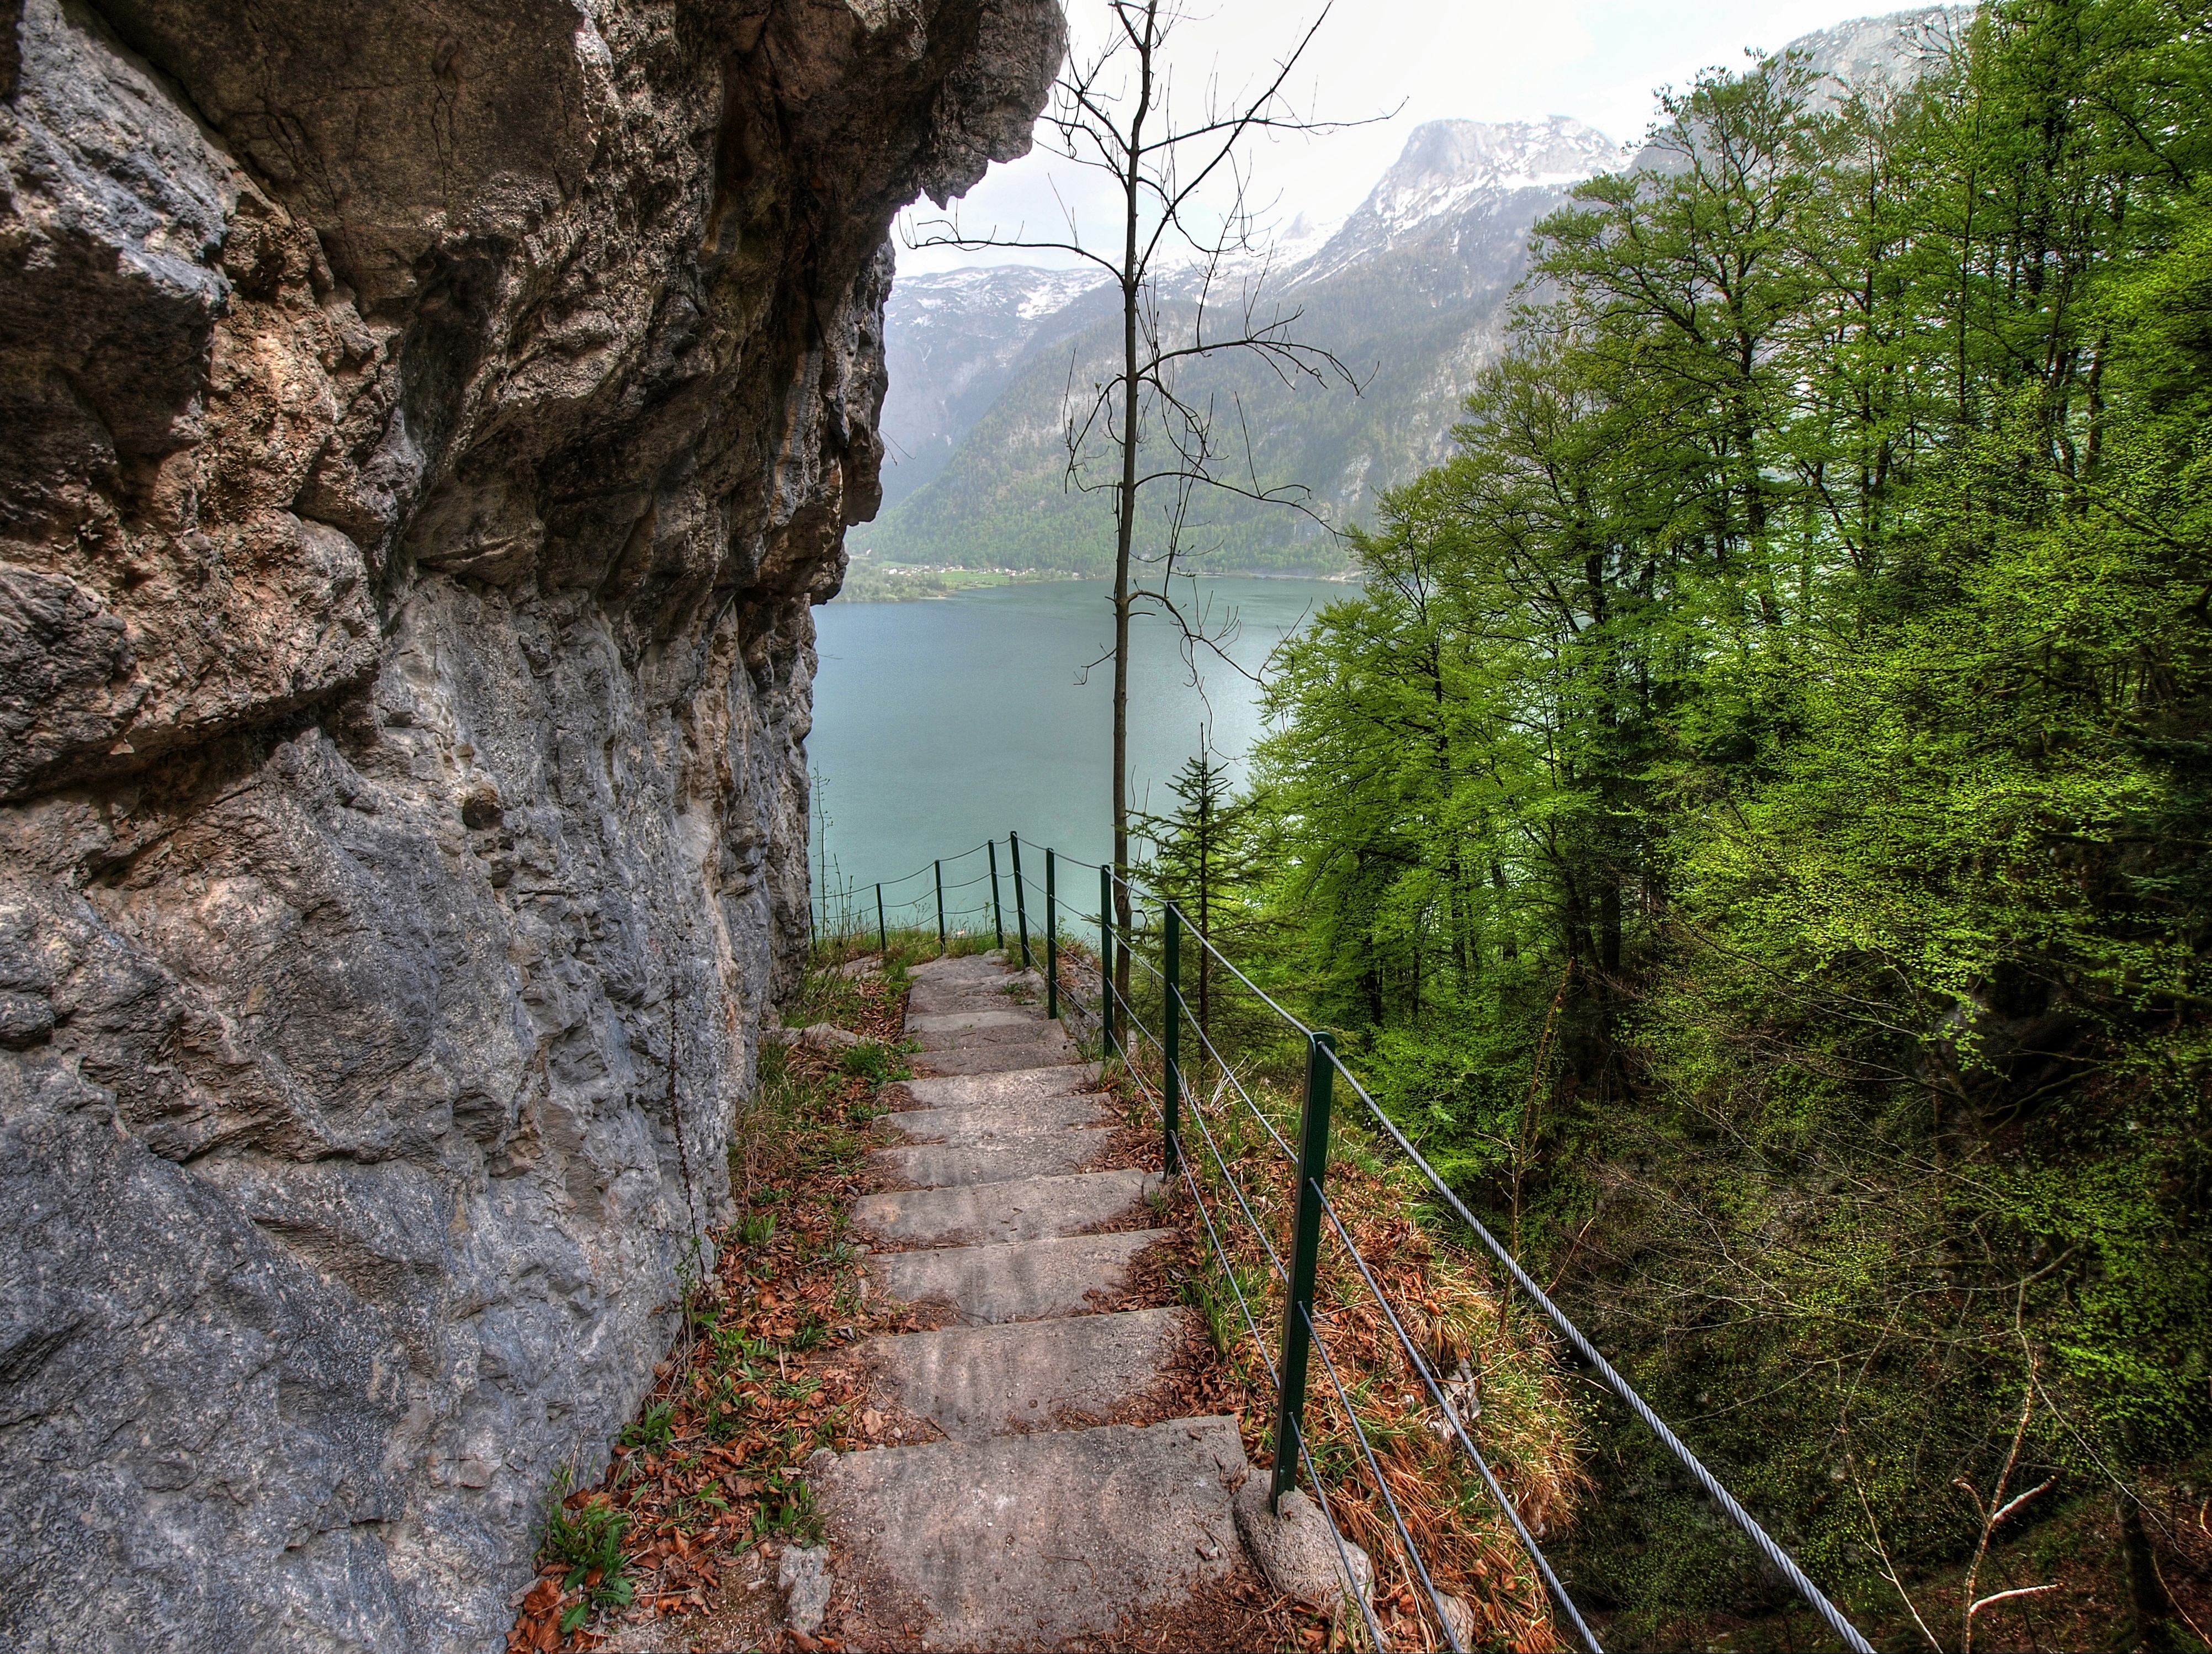 75842 download wallpaper Nature, Rock, Lake, Steps, Trees, Descent, Landscape screensavers and pictures for free